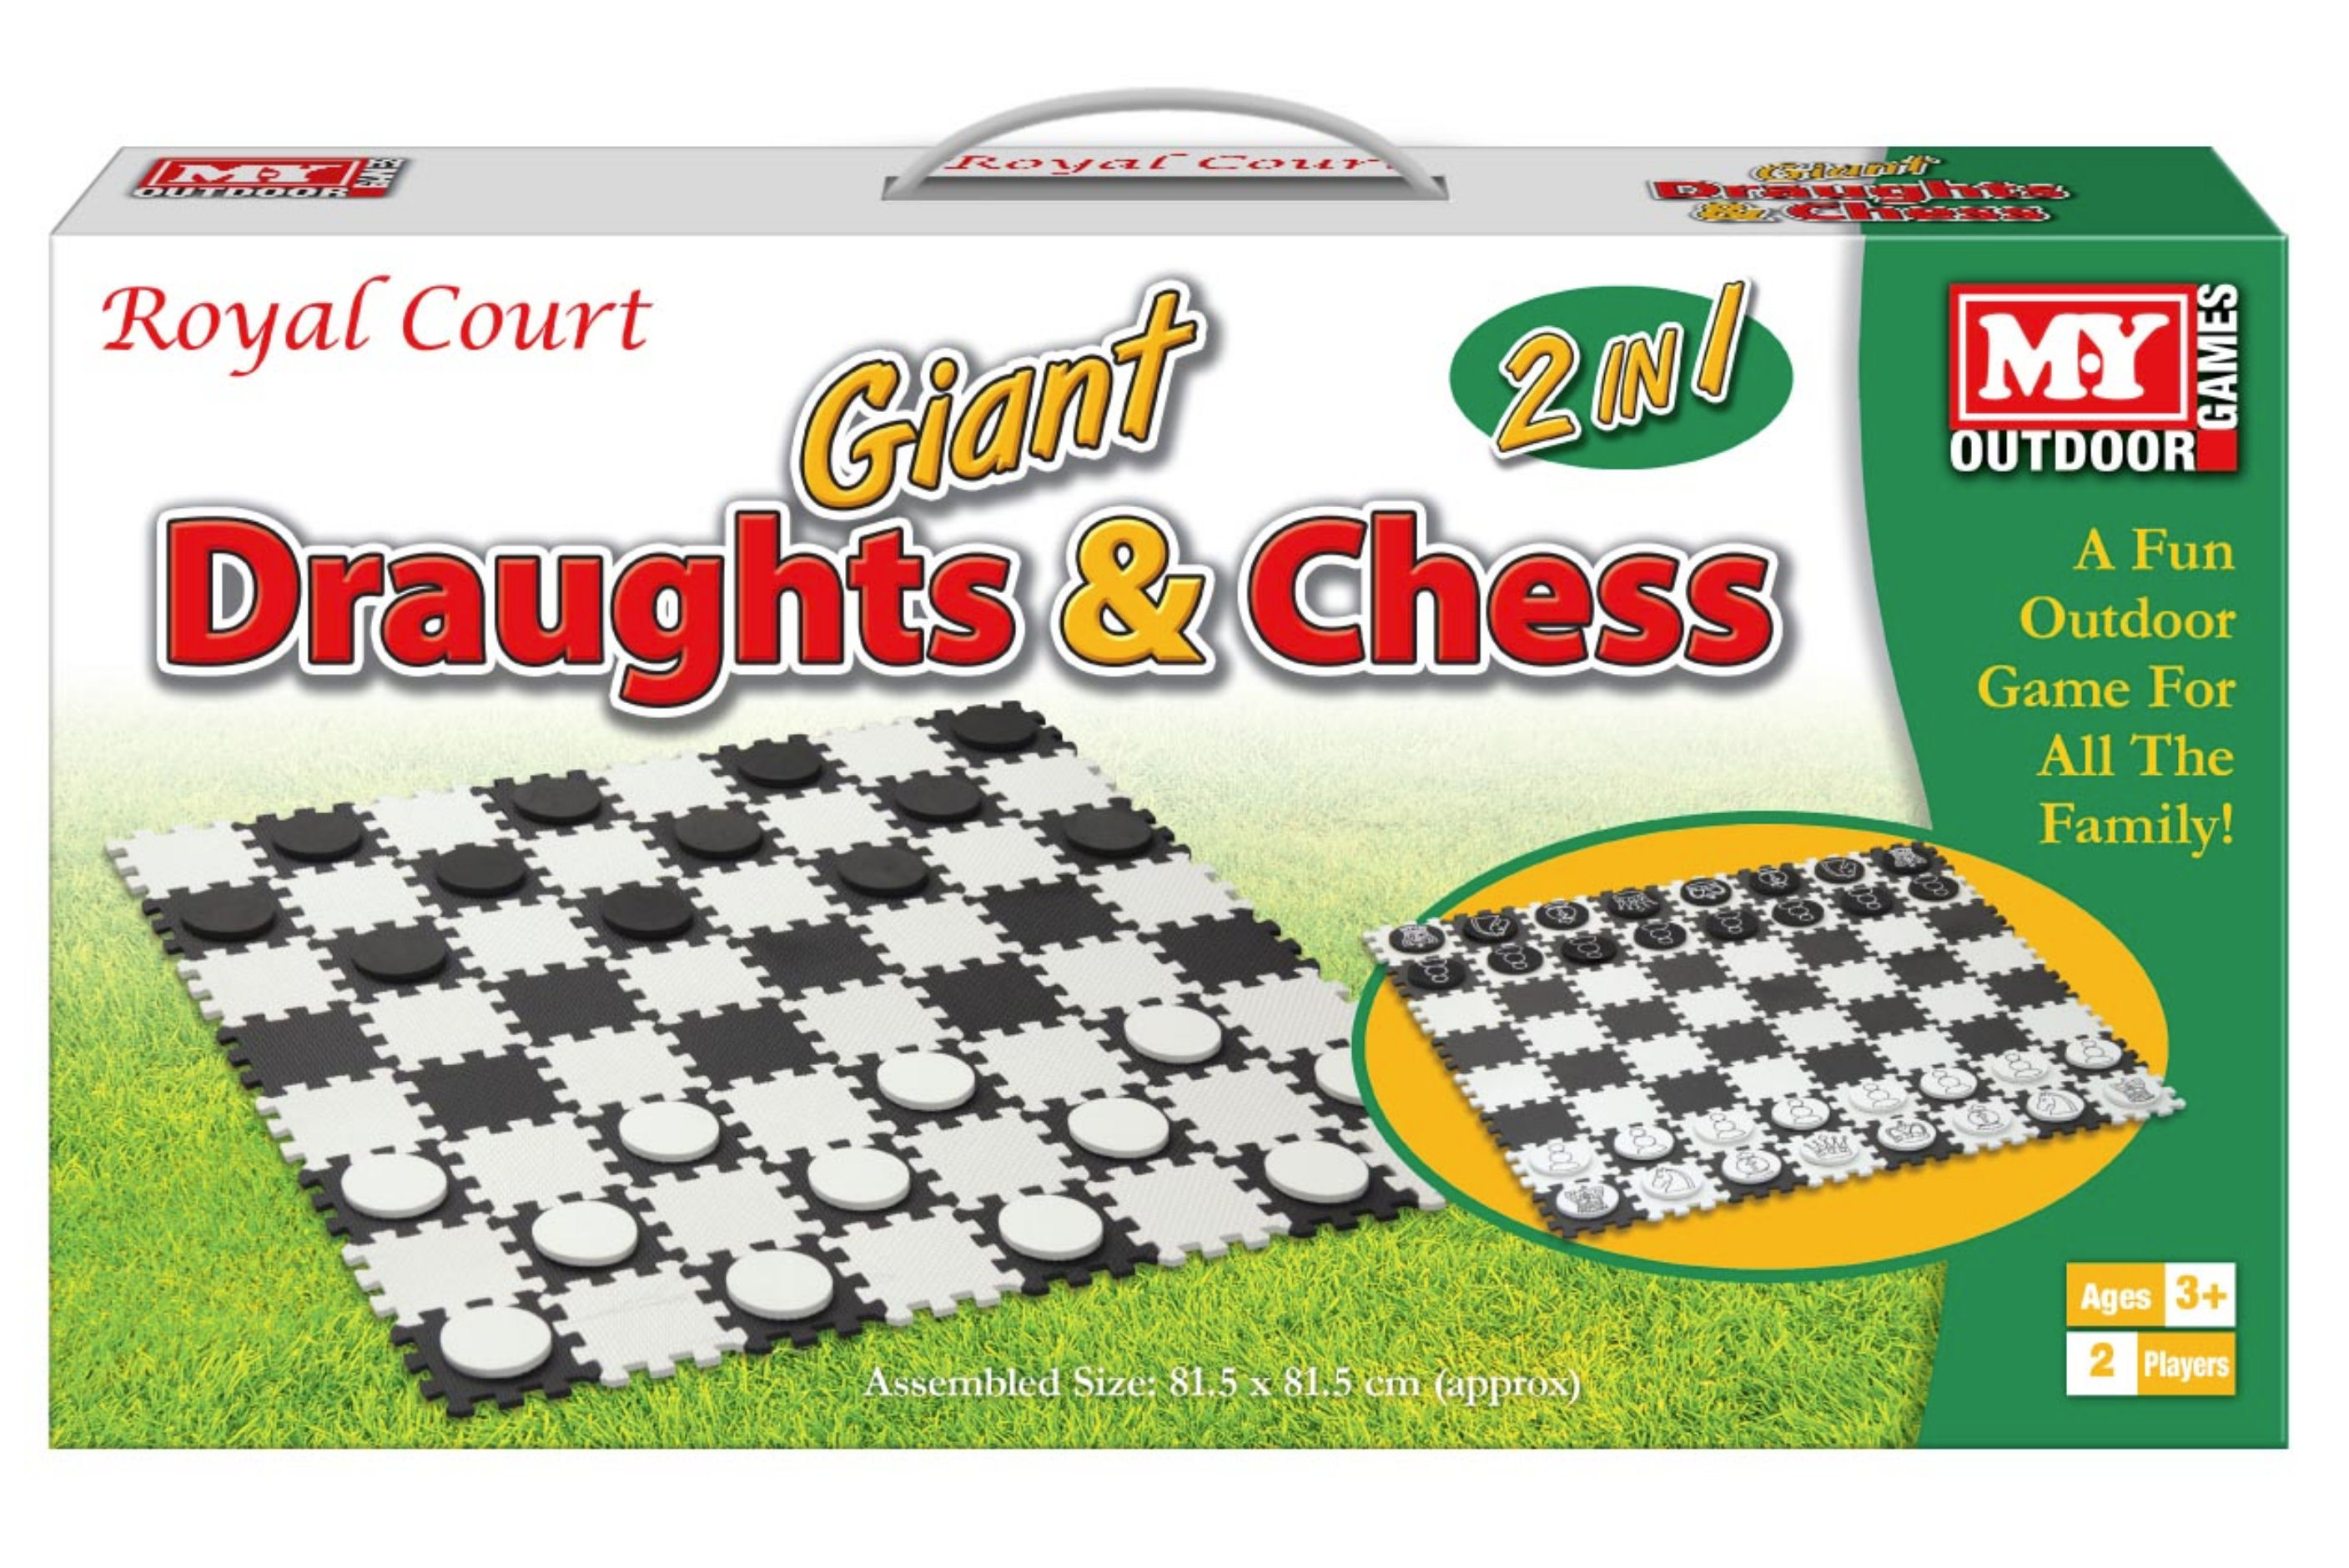 "Giant Draughts & Chess 2-In-1 Game In Colour Box ""M.Y"""